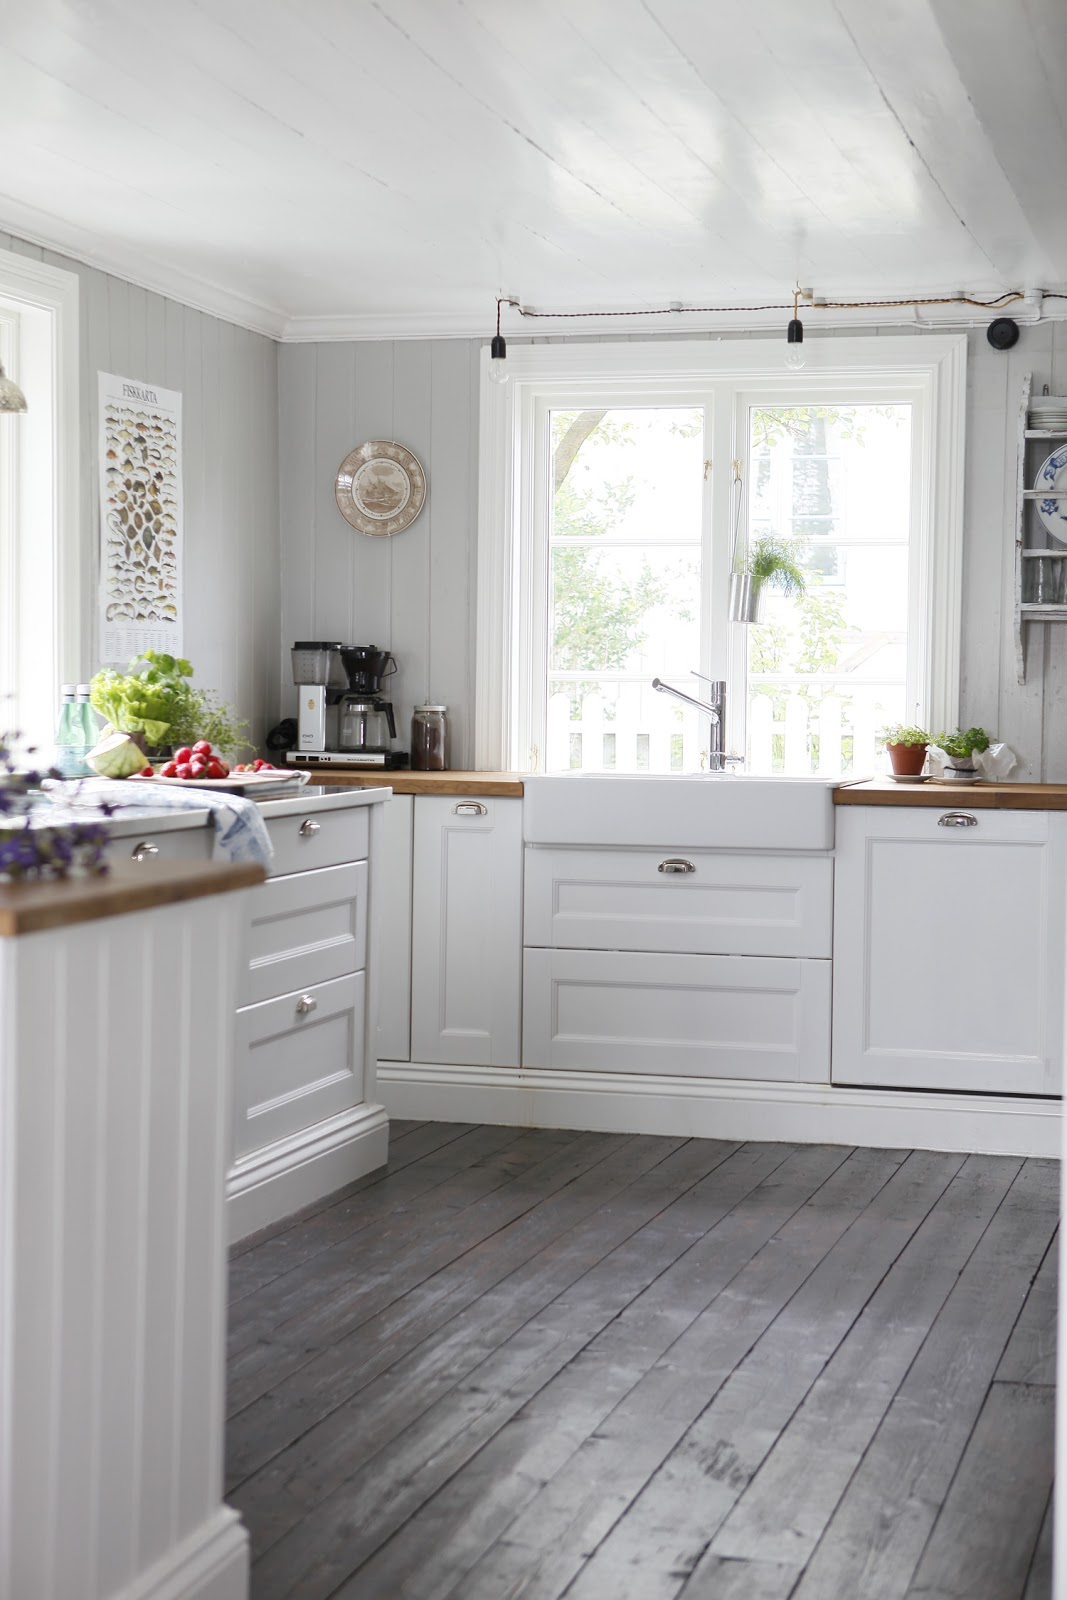 painting wood floors wood floor kitchen 9 best images about Painting Wood Floors on Pinterest How to paint Baby rooms and Painted floors